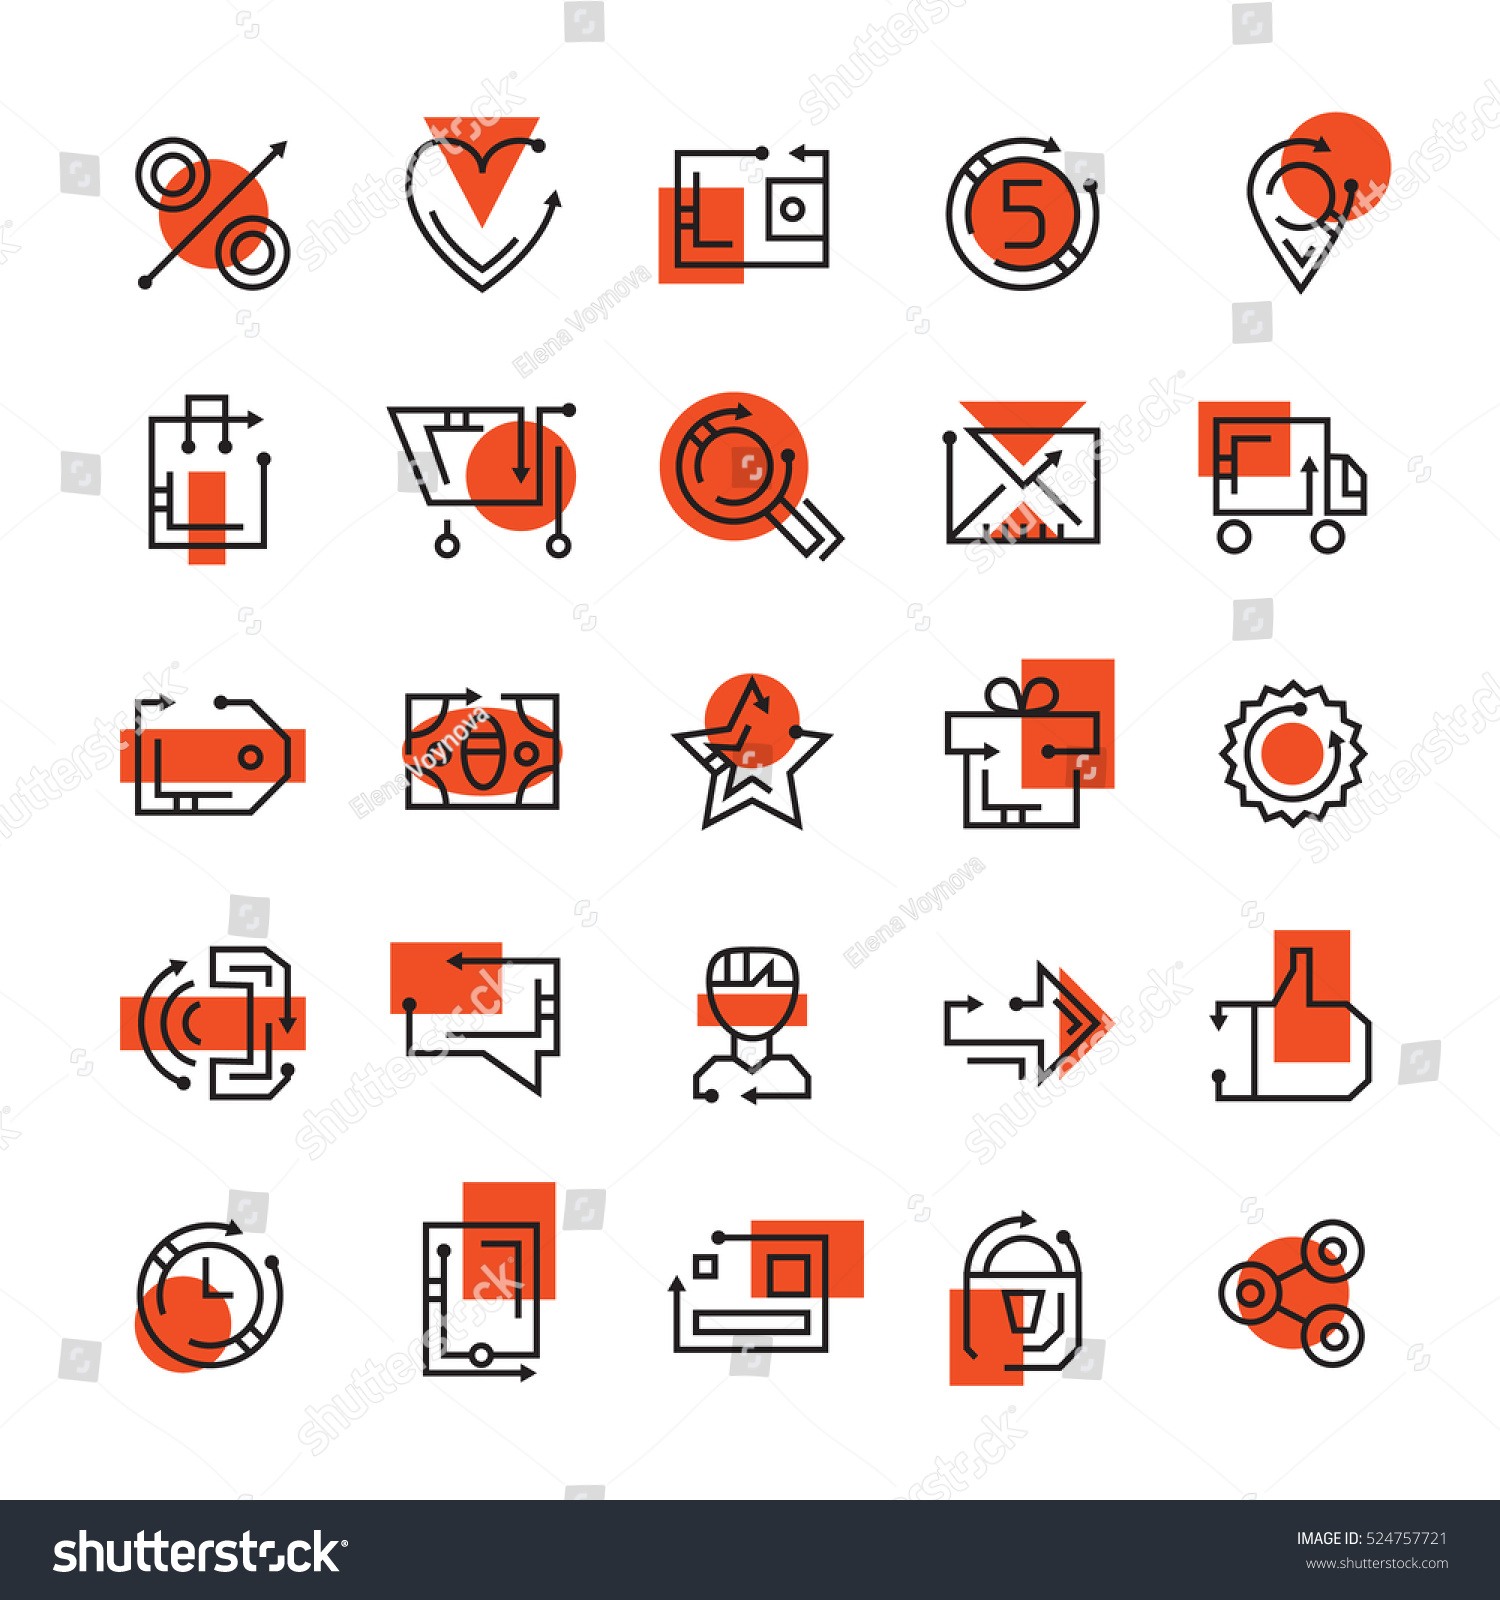 Online store icons set icons ecommerce stock vector for How to design online shopping website